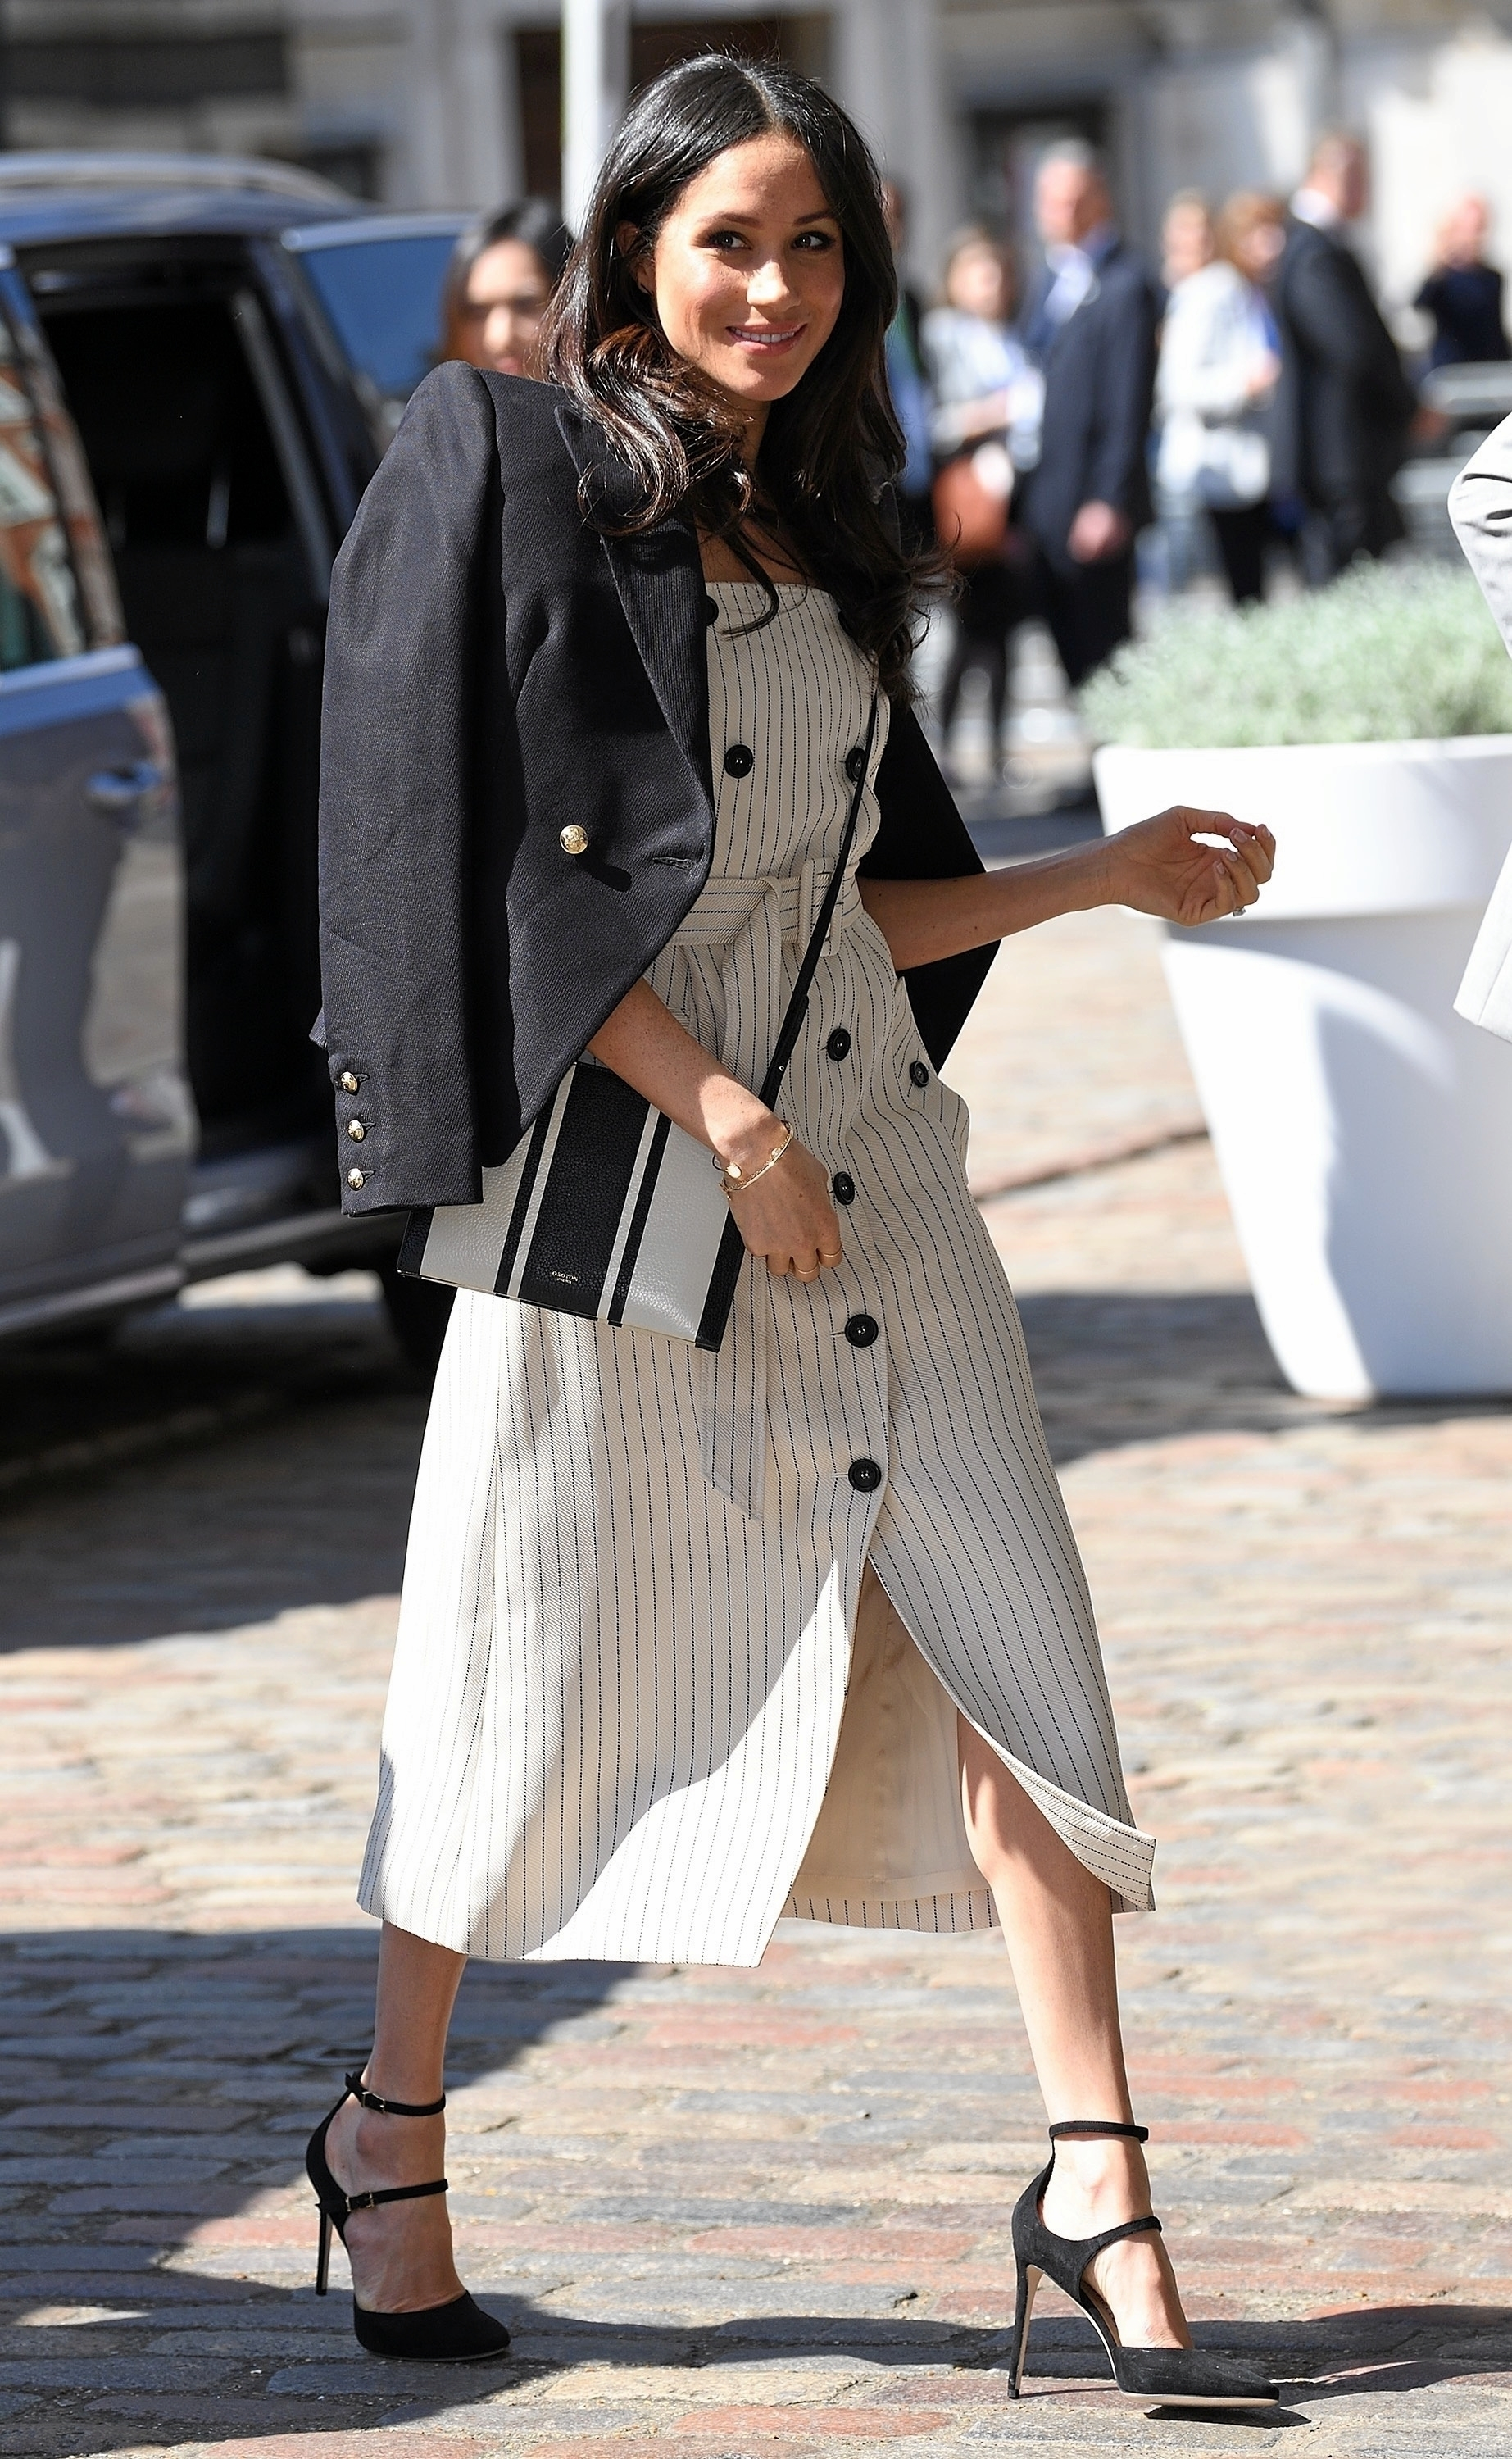 The Duchess of Sussex Meghan Markle attending the Commonwealth Youth Forum Reception in this chic Altuzarra Studio Audrey Dress